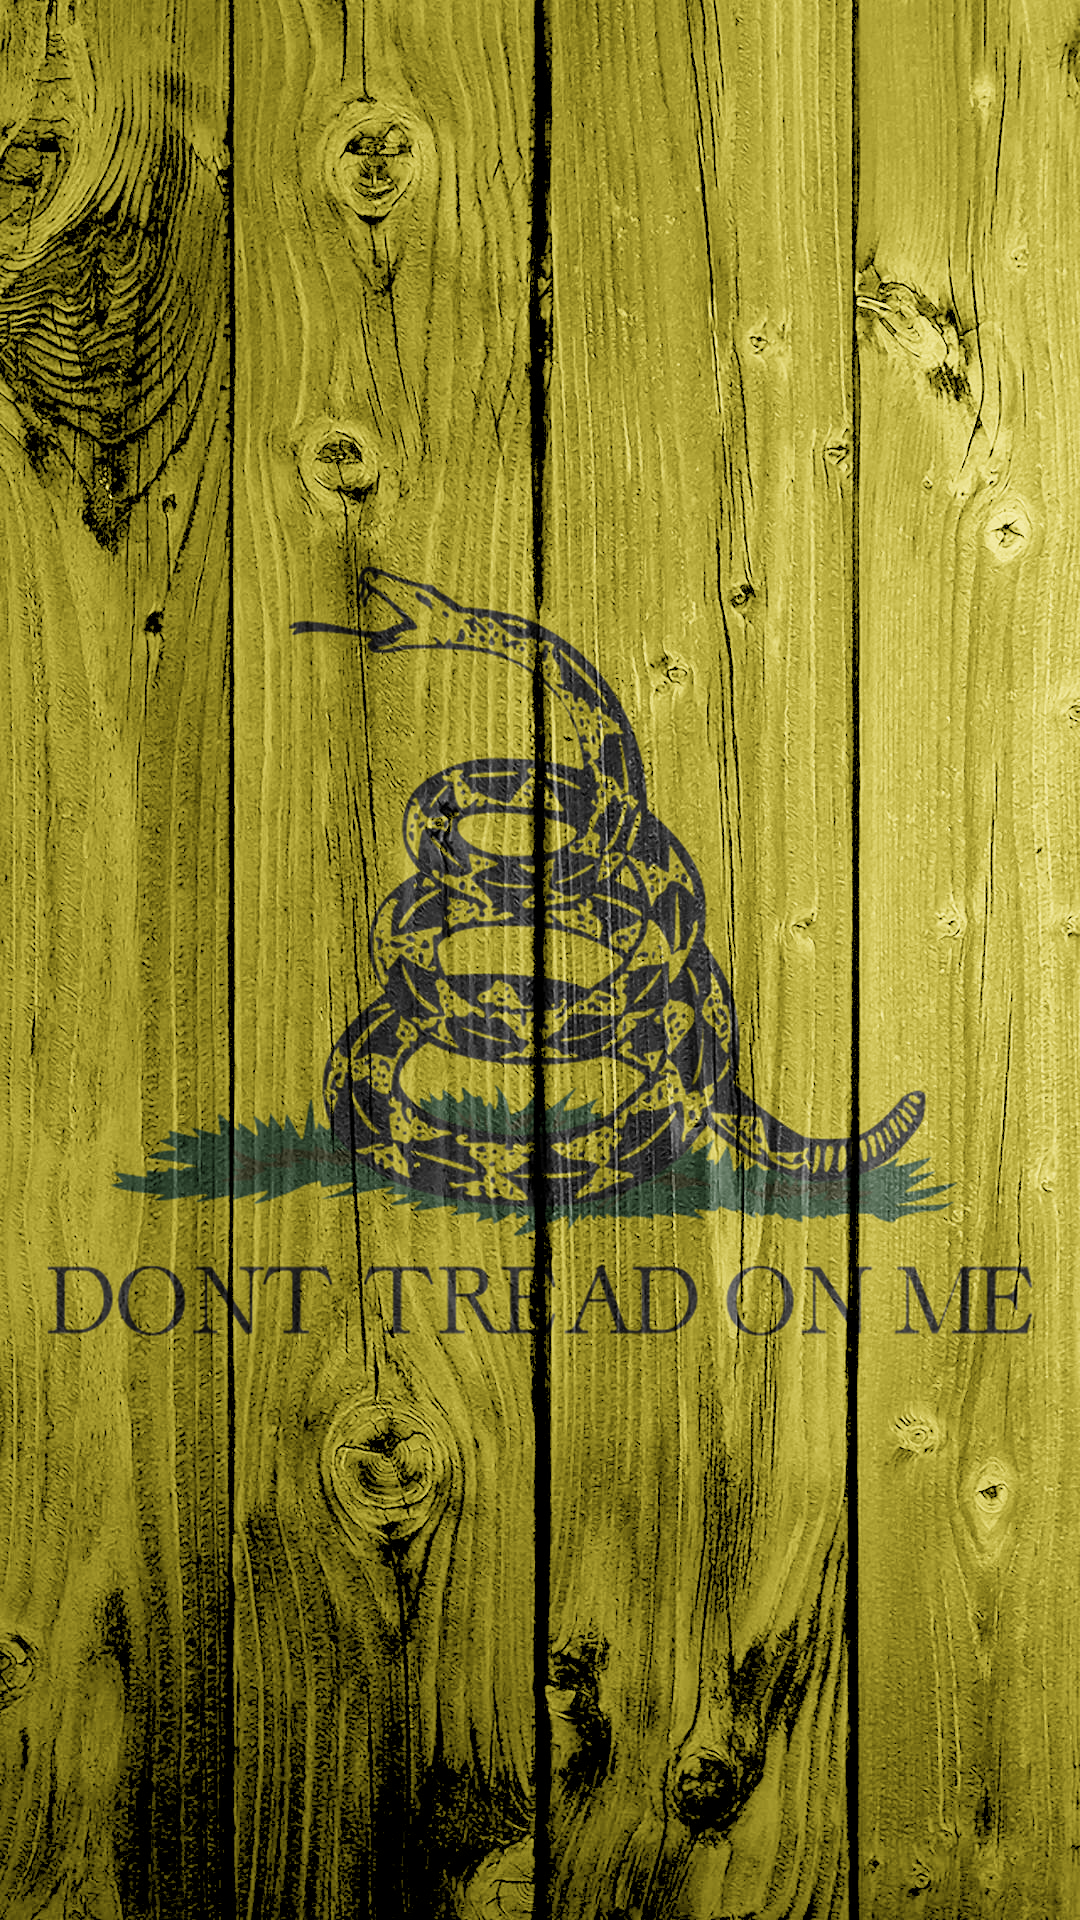 DONT TREAD ON ME 1080x1920 Flag Wallpaper By LoneStarPatriot